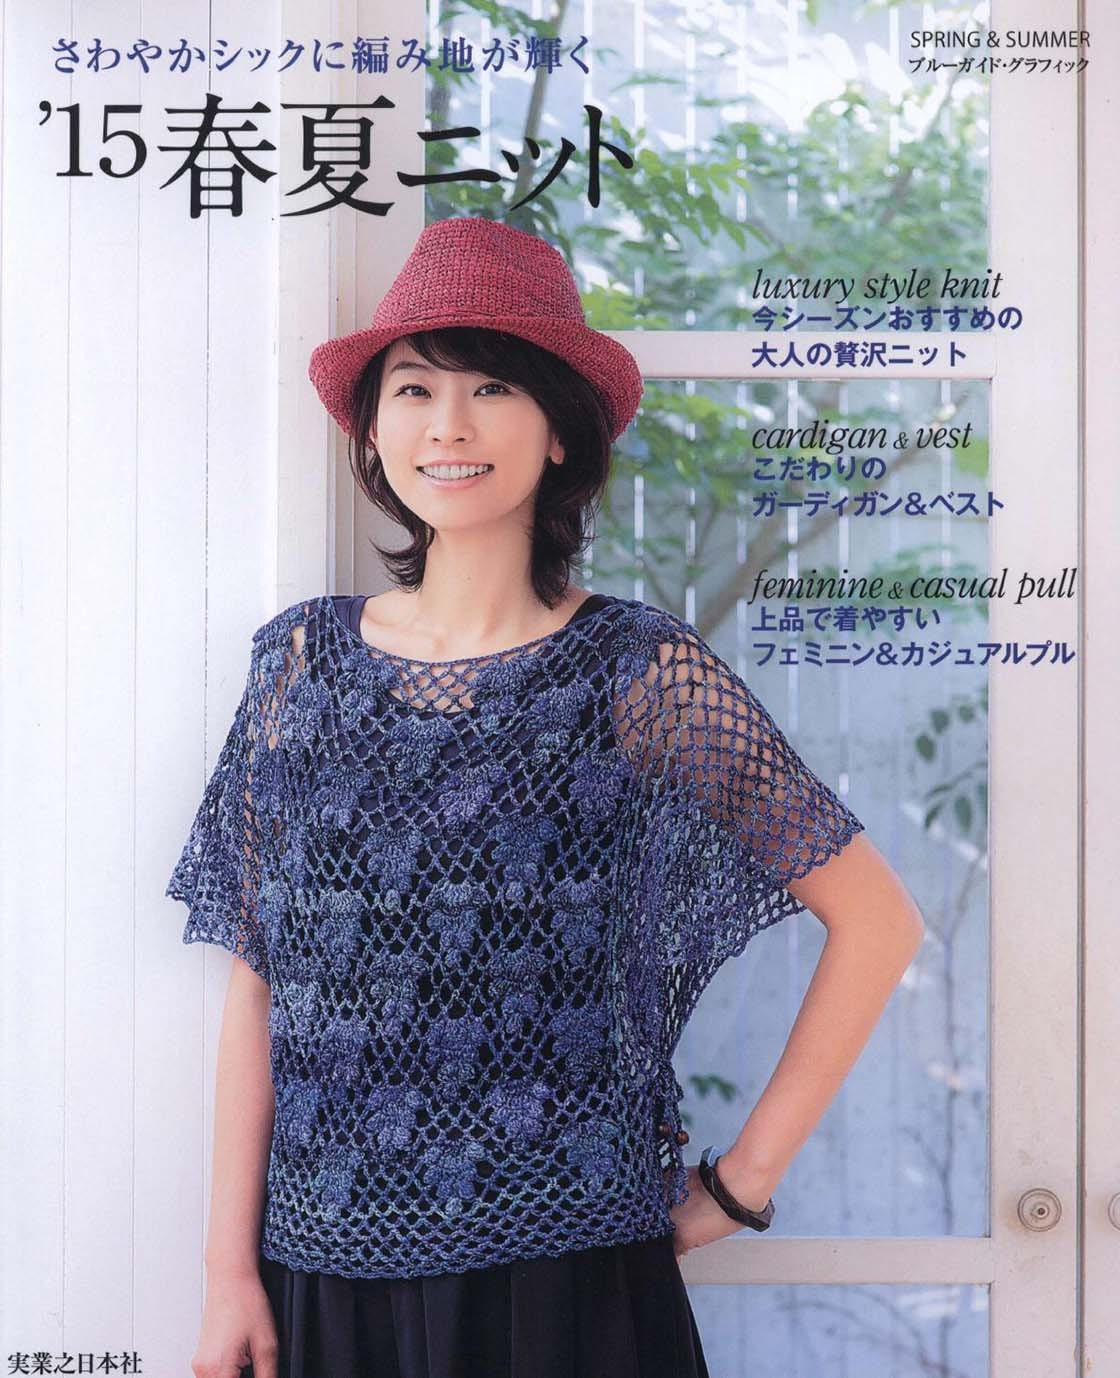 Spring And Summer Style Knit Japanese Ebook Pdf Digital Download From Ebookcafe On Etsy Studio